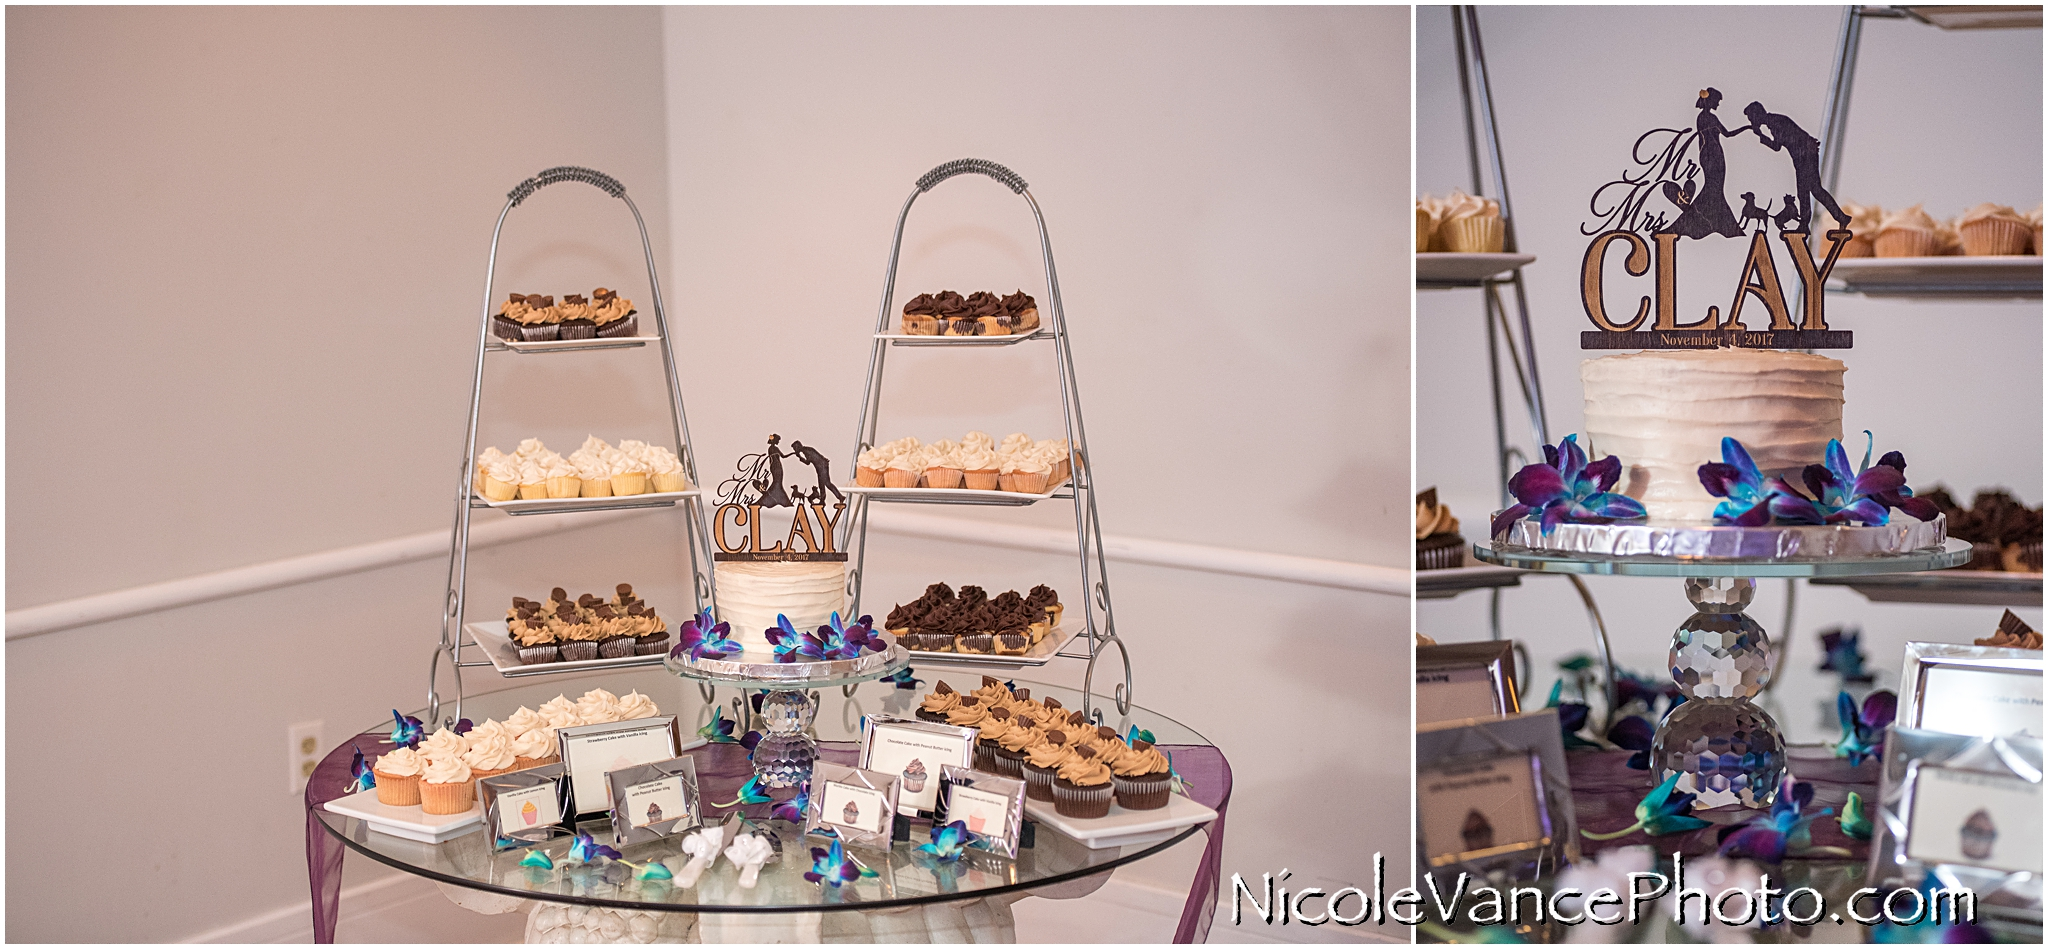 Cake and cupcakes were provided by Kakealicious at the wedding reception at The Brownstone.